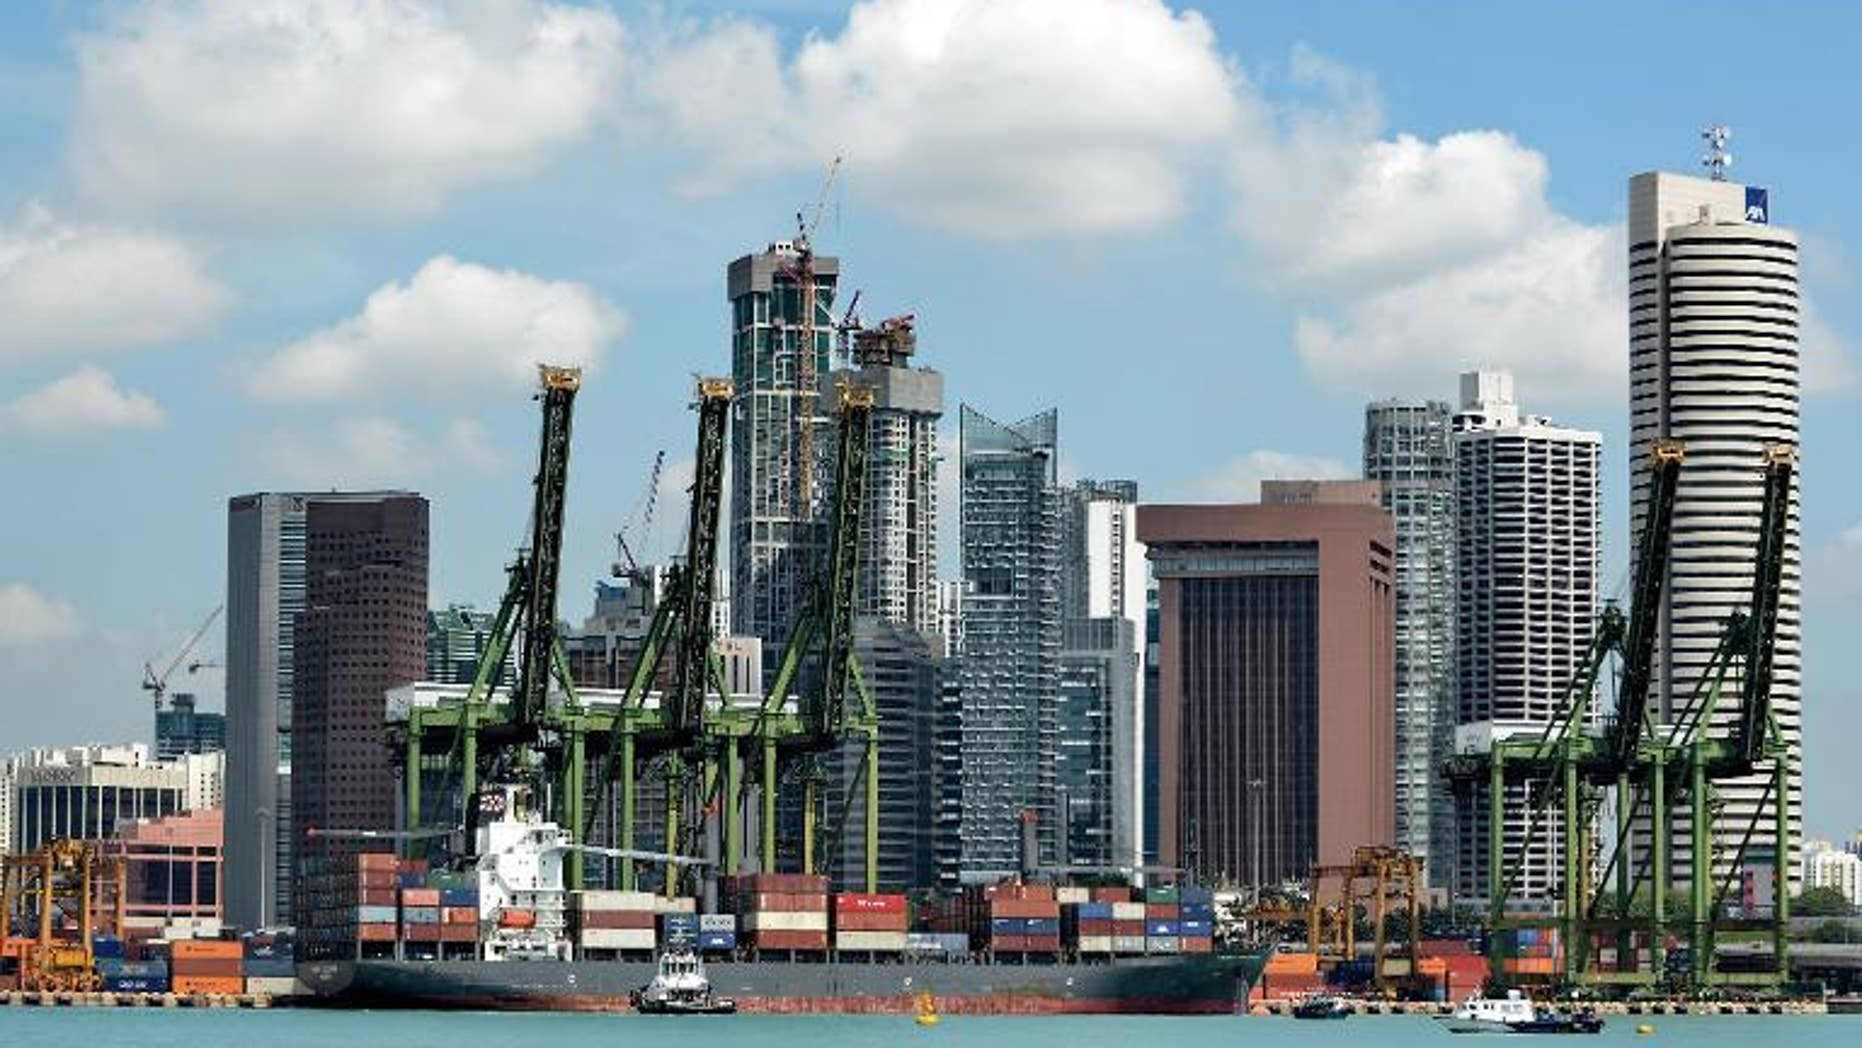 The Keppel container port next to the financial district in Singapore on April 12, 2013